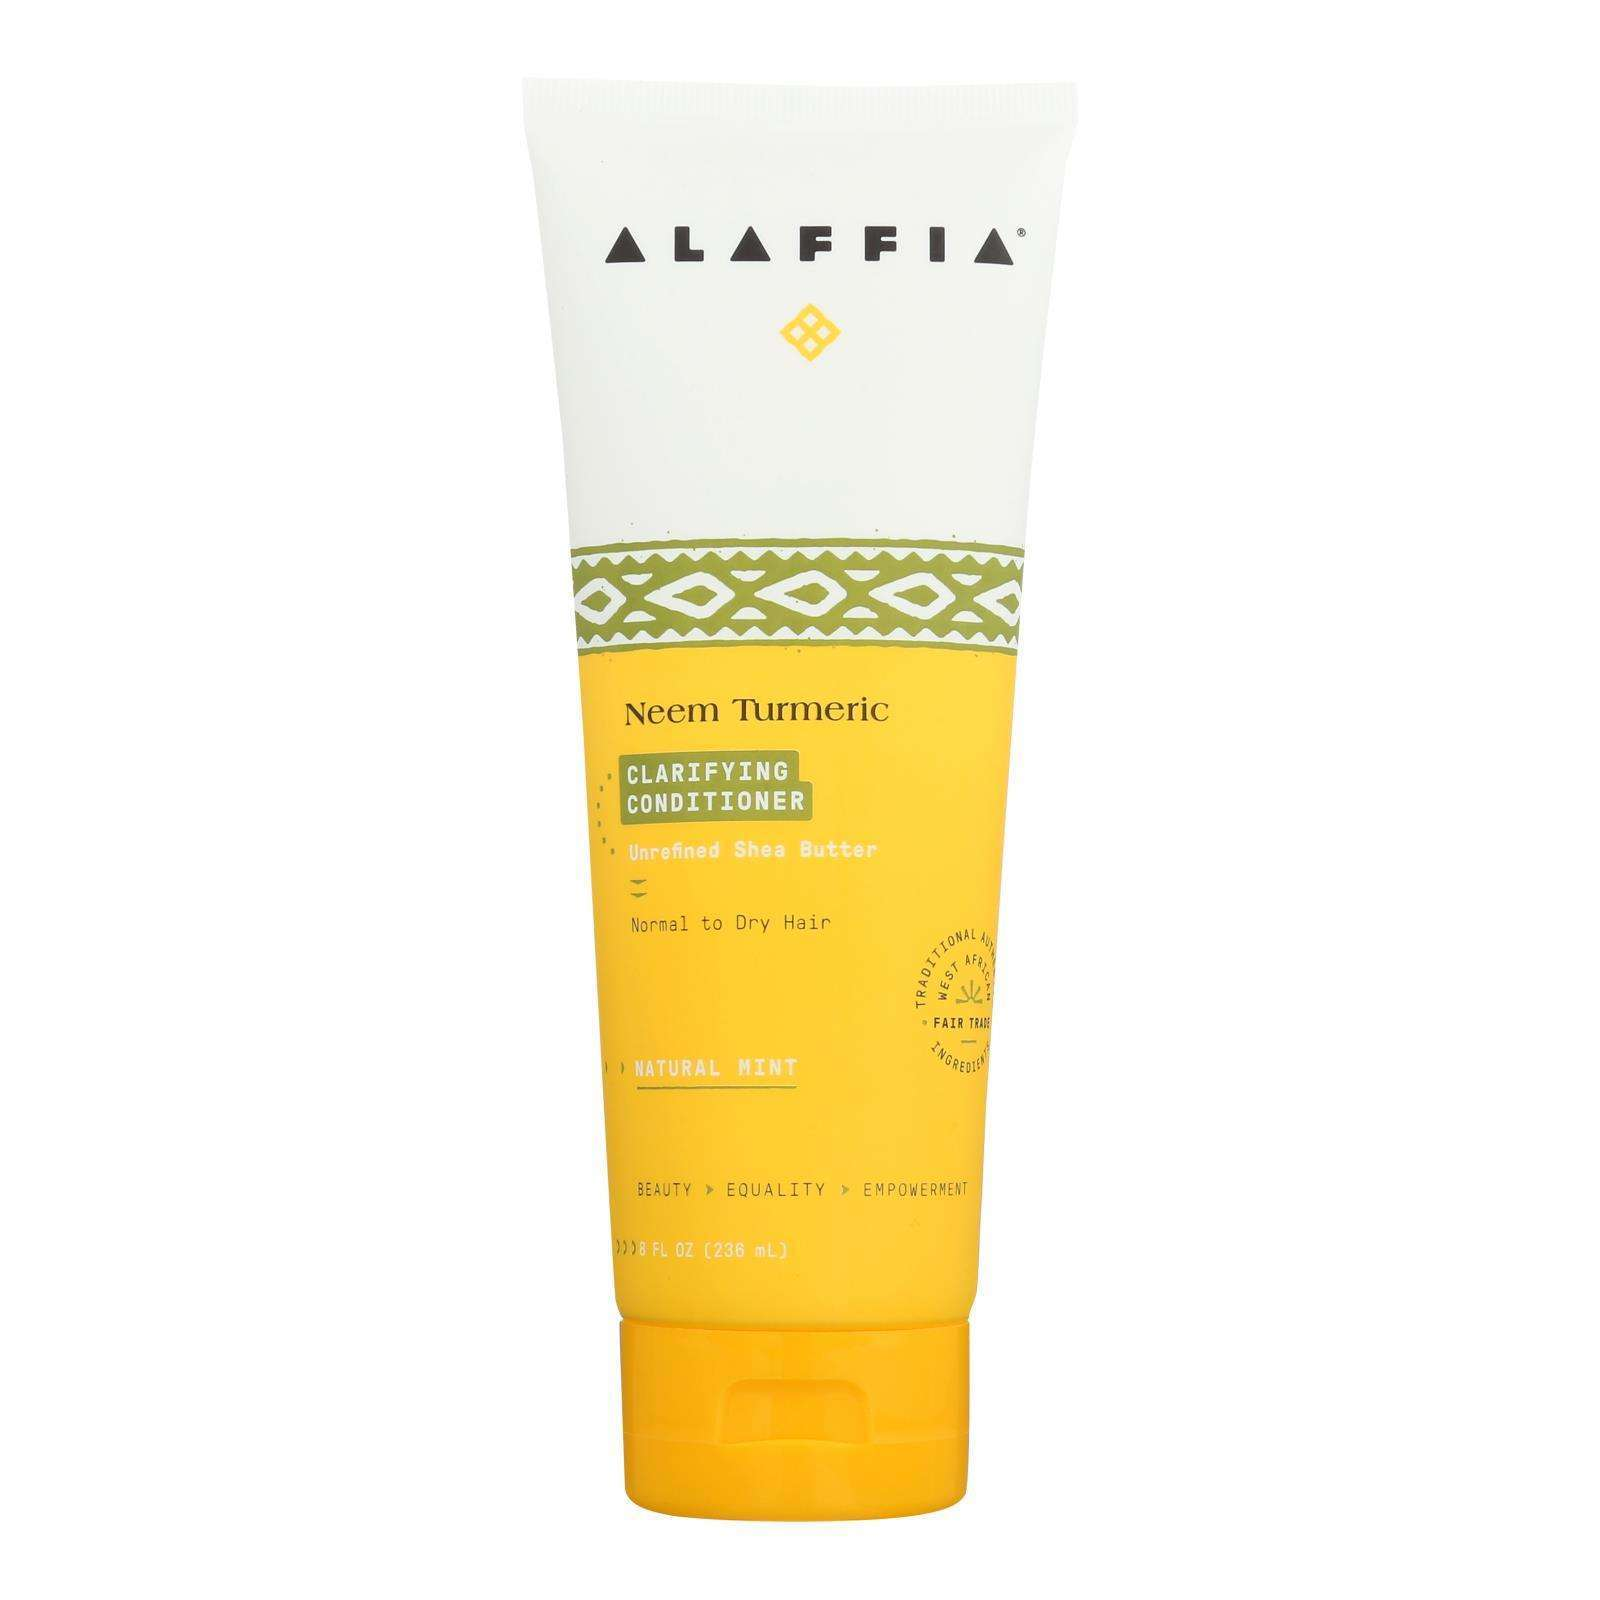 Alaffia - Conditioner - Neem Turmeric - 8 Fl Oz. - BeeGreen